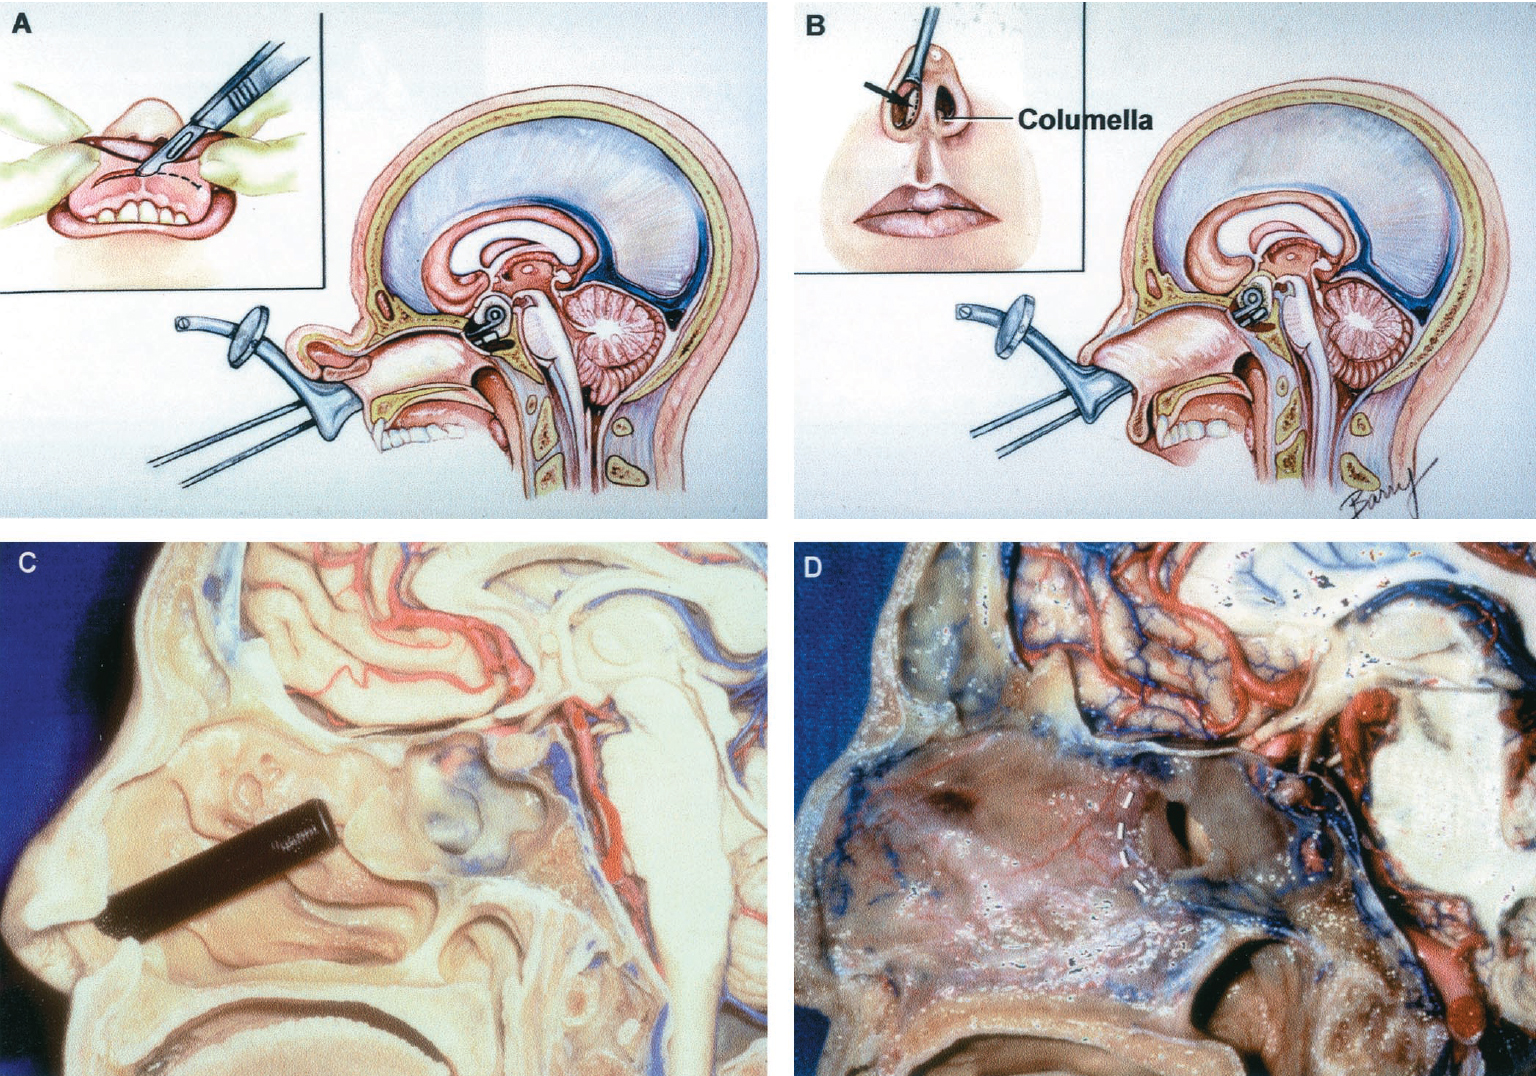 Figure 8.17 (A–D). Sublabial, transseptal, and endonasal approaches to the sphenoid sinus. A, the sublabial approach is directed under the lip and submucosally along the side of the nasal septum to the face of the sphenoid. The inset shows the site of the gingivobuccal incision and the direction of insertion of the speculum under the lip to reach the nasal cavity. B, the transseptal approach is directed through a small incision in the mucocutaneous junction along the side of the columella and submucosally along the septum to the sphenoid face. C, the Rhoton endonasal transsphenoidal speculum has been inserted along the route of the endonasal transsphenoidal approach directed through one nostril, between the conchae laterally and the nasal septum medially. D, the broken line shows the area where the posterior septum is separated from the face of the sphenoid sinus. Sphen., sphenoid. (Images courtesy of AL Rhoton, Jr.)